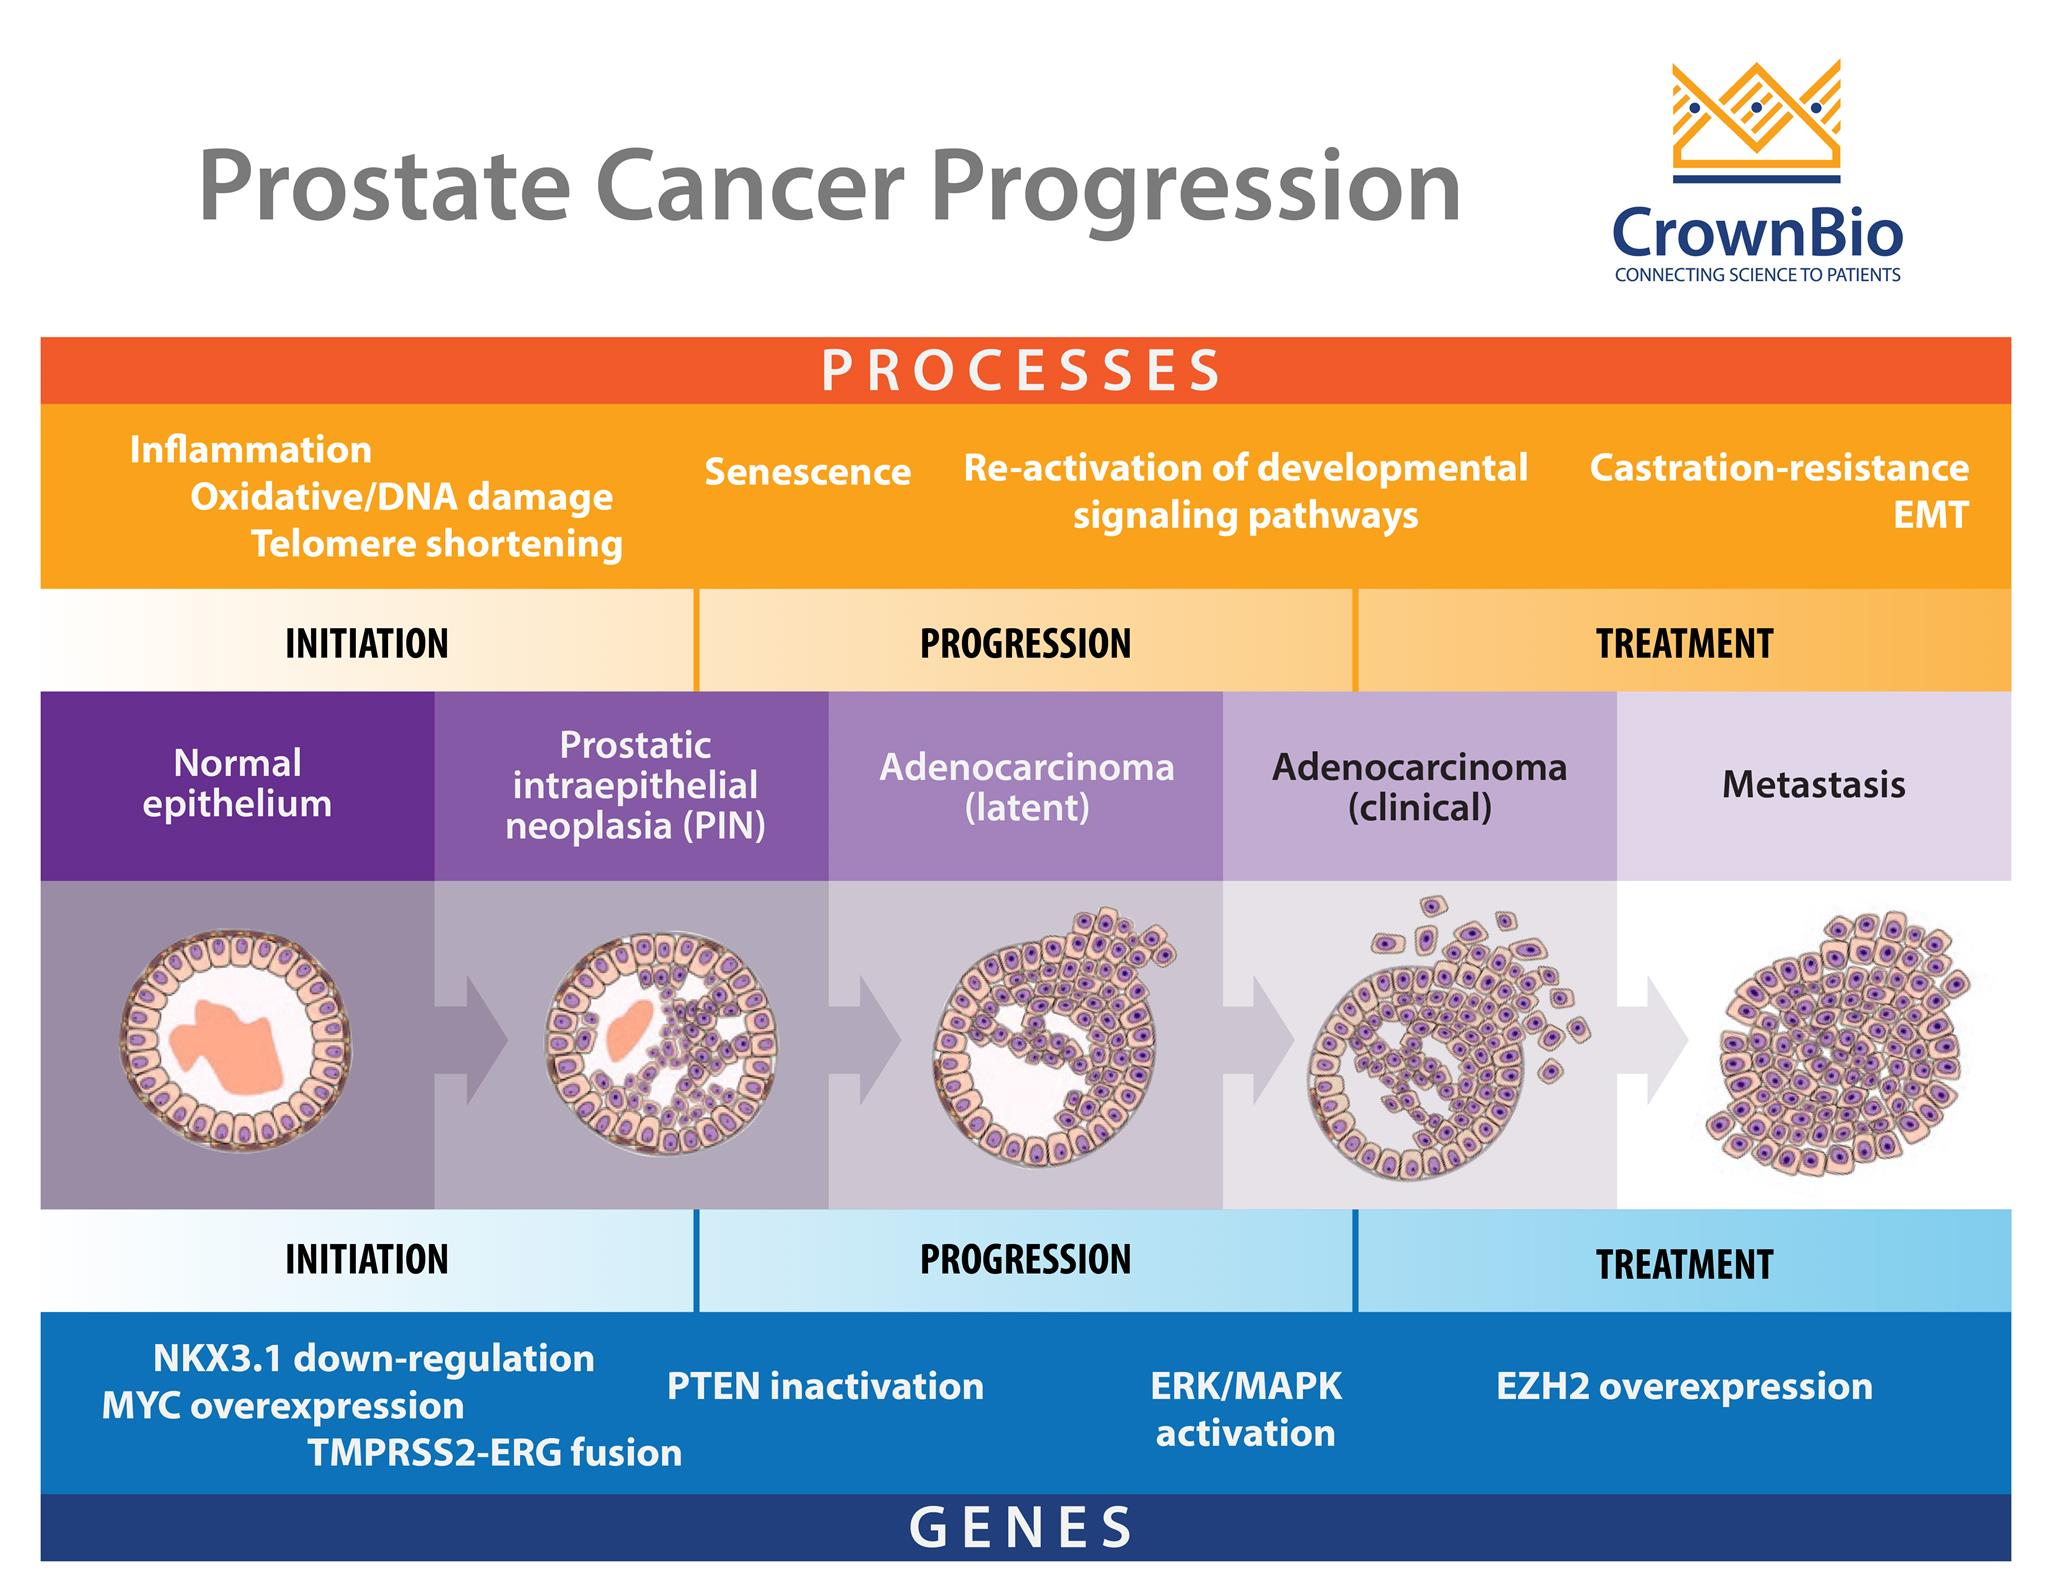 Why Are Prostate Cancer Preclinical Models Hard to Develop?